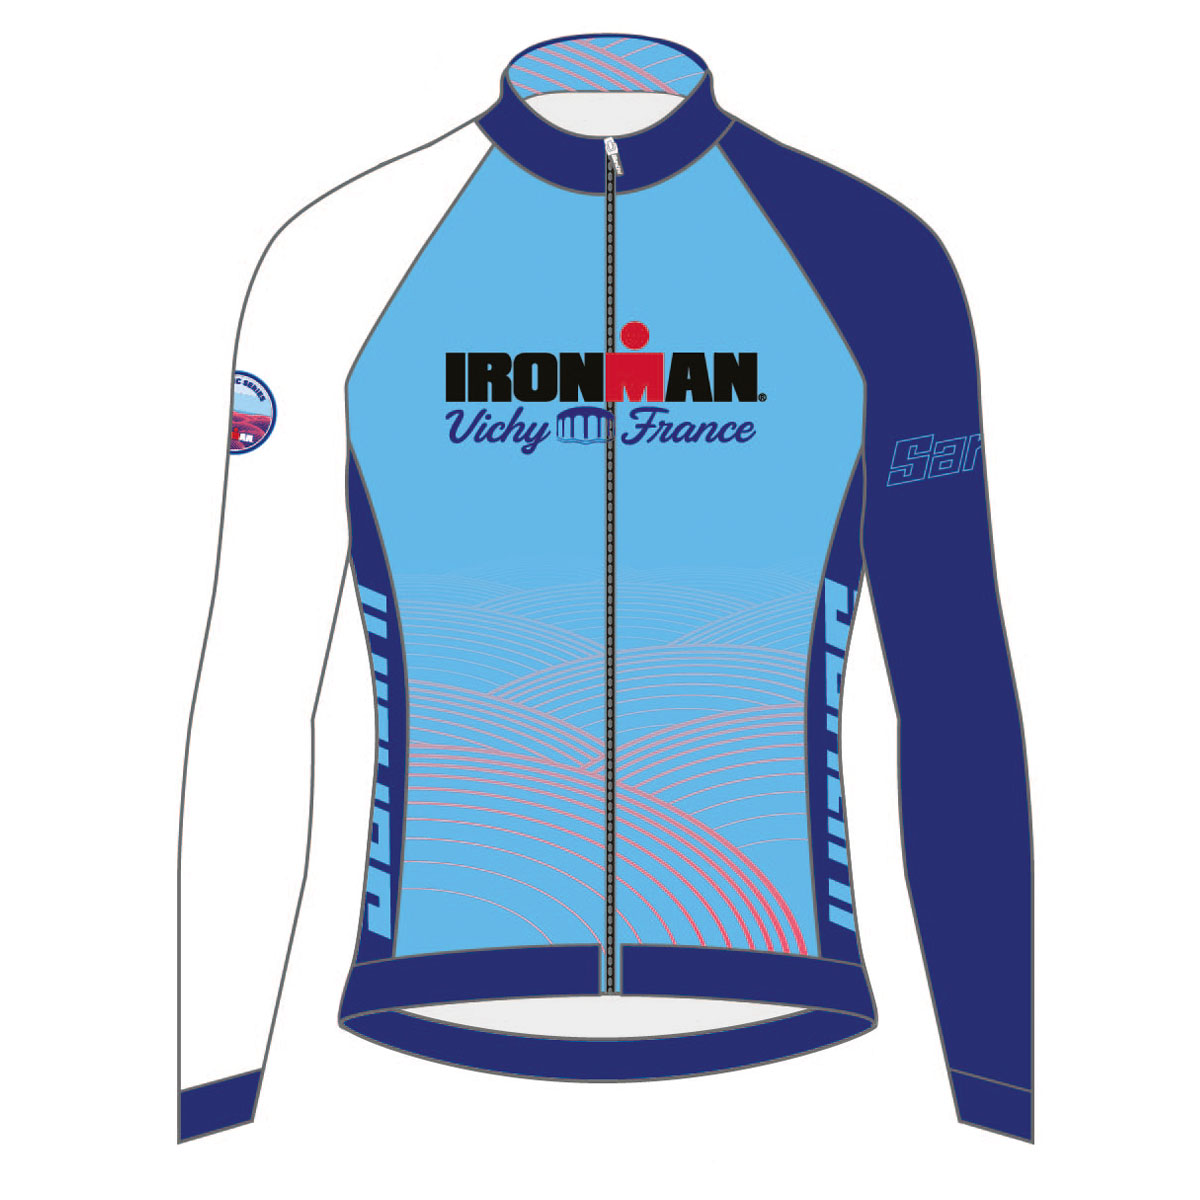 IRONMAN VICHY 2019 WOMEN'S FINISHER COURSE CYCLE JERSEY